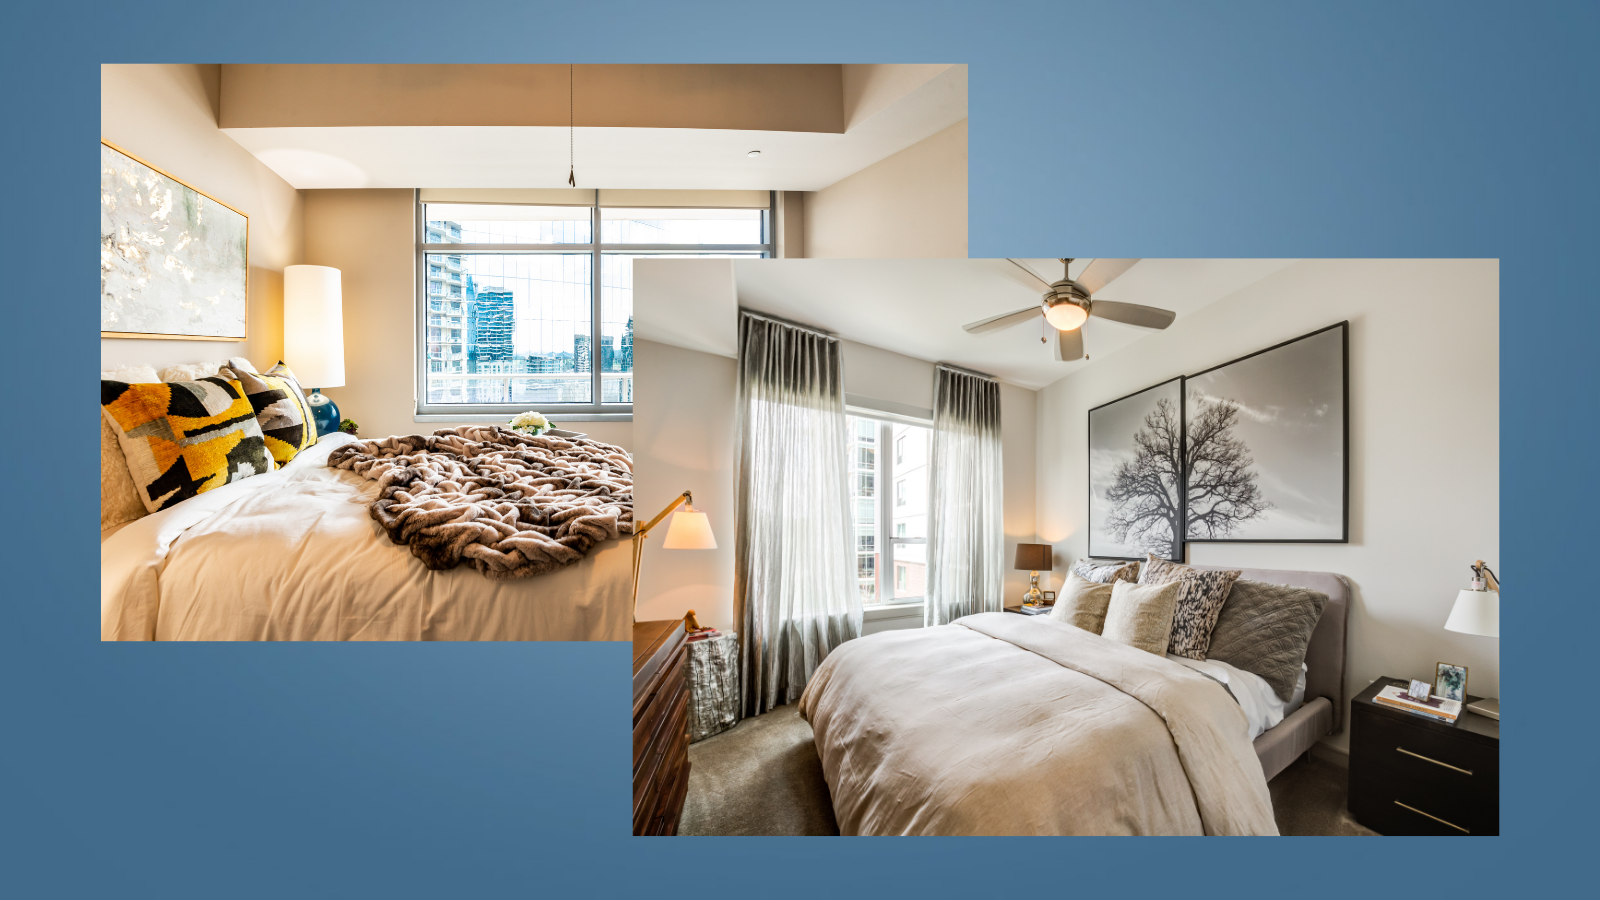 Real Estate Staging Tips for the Holidays That Won't Date Your Photos